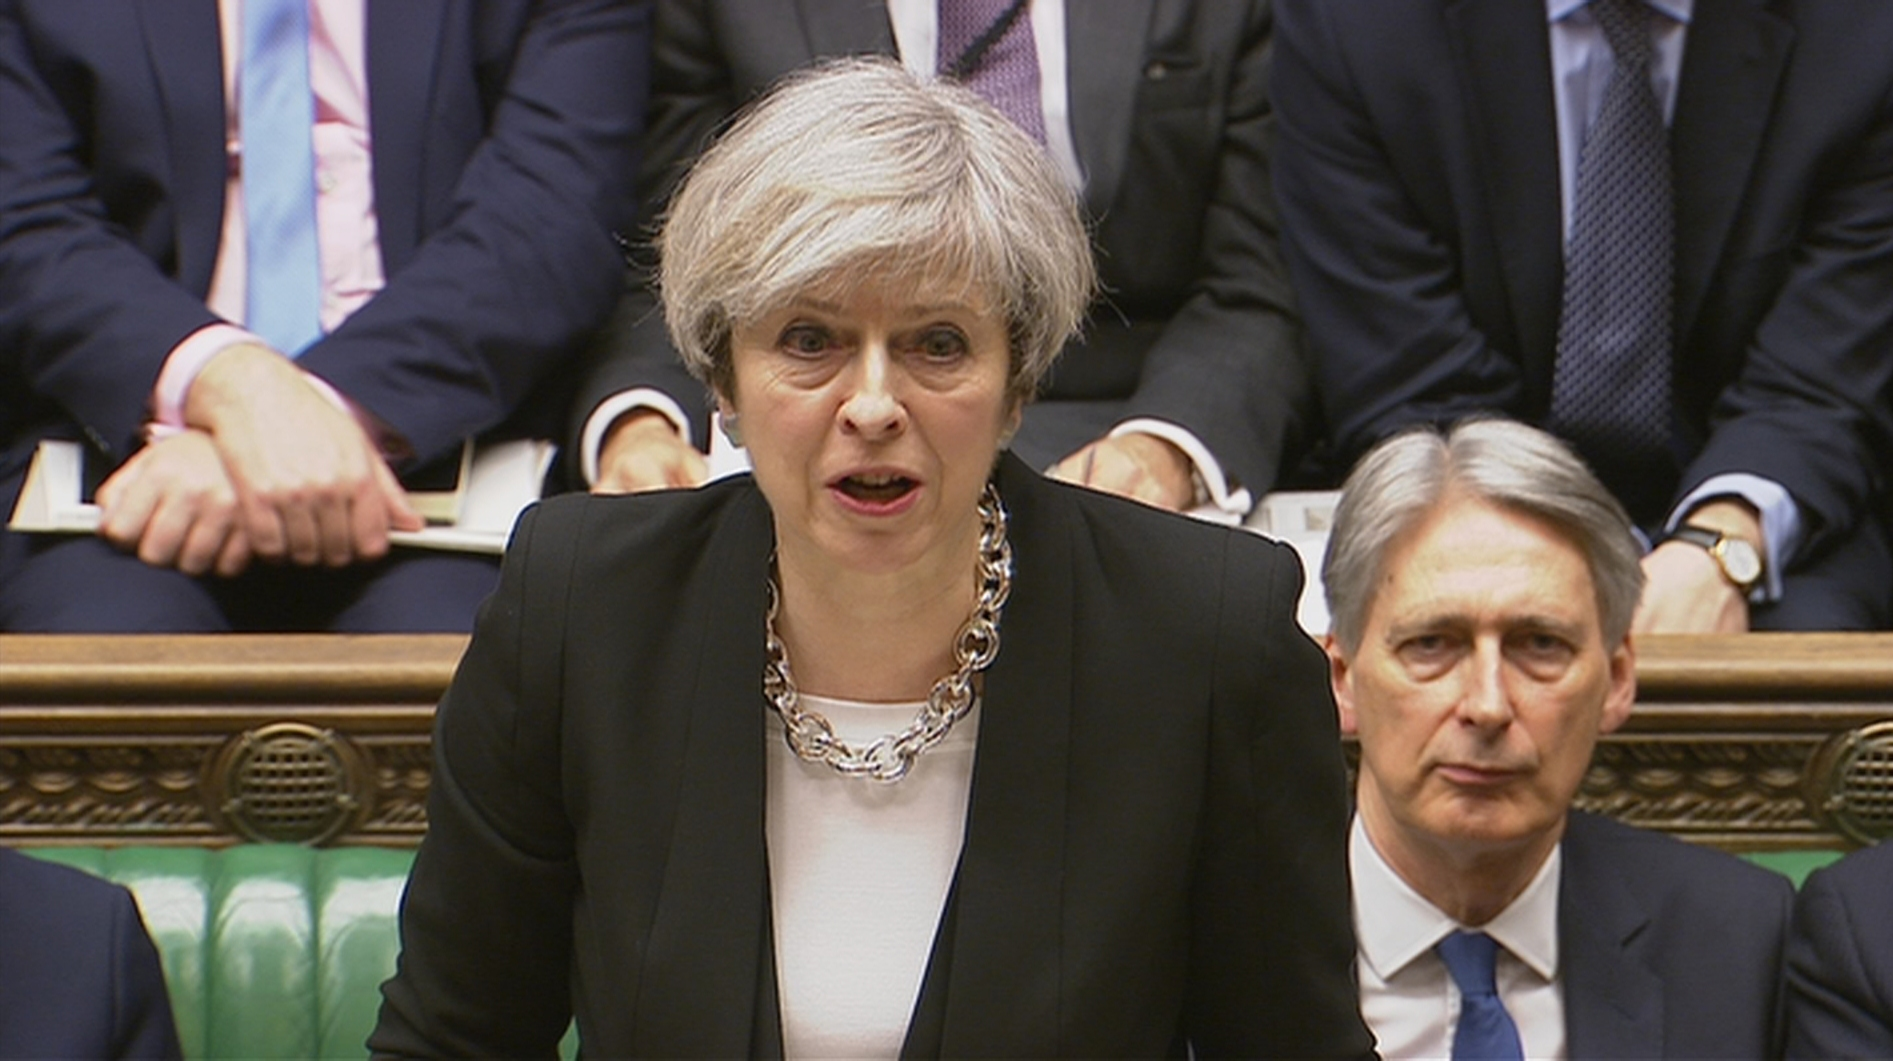 Britain's Prime Minister Theresa May speaks in Parliament the morning after an attack in Westminster in London on March 23, 2017. (Parliament TV/Handout via REUTERS)